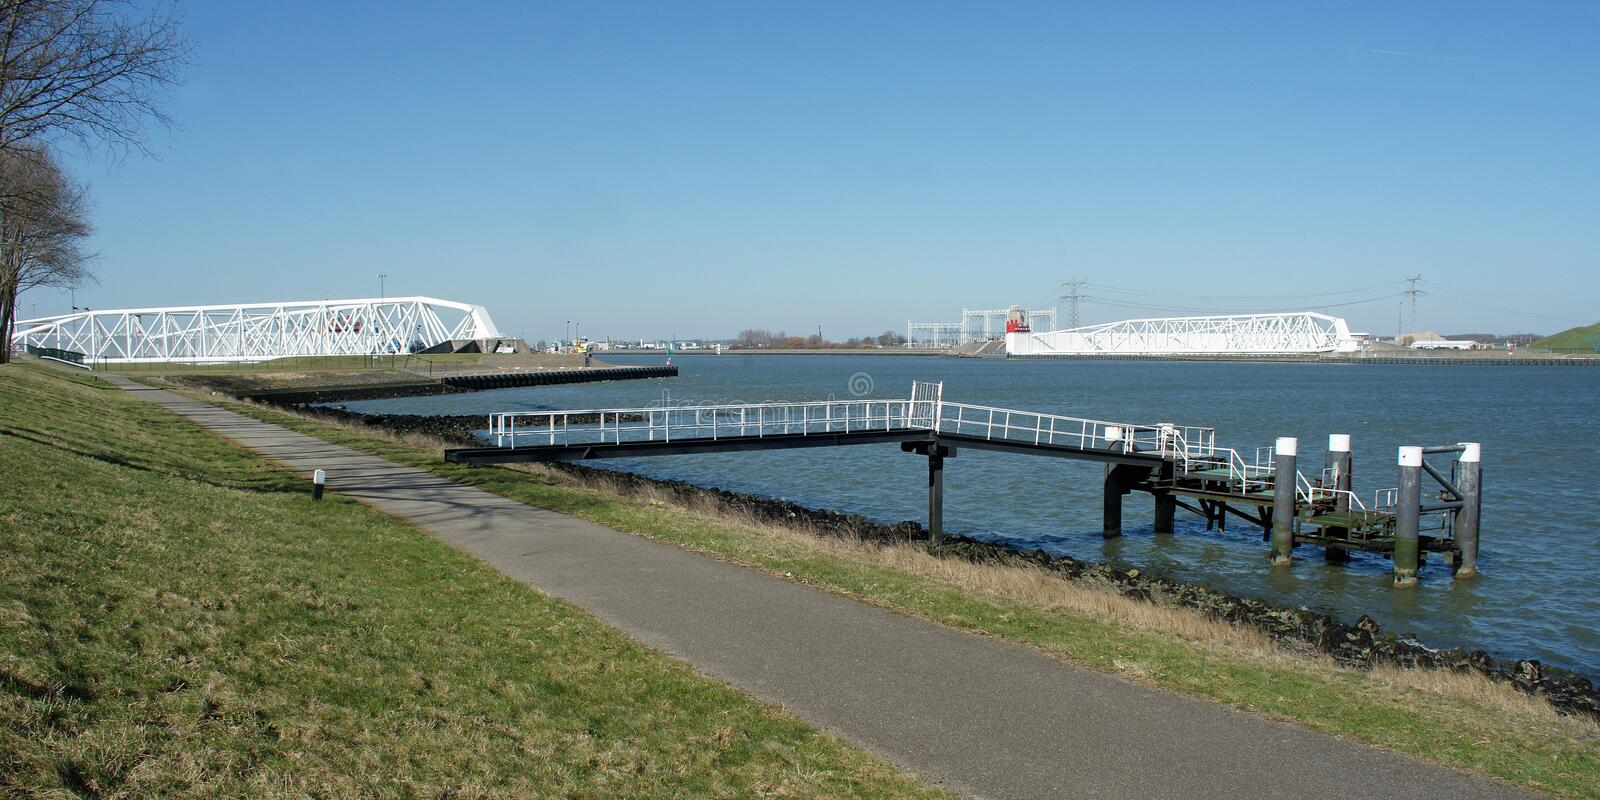 Maeslantkering in the Nieuwe Waterweg with landing stage in the front royalty free stock images